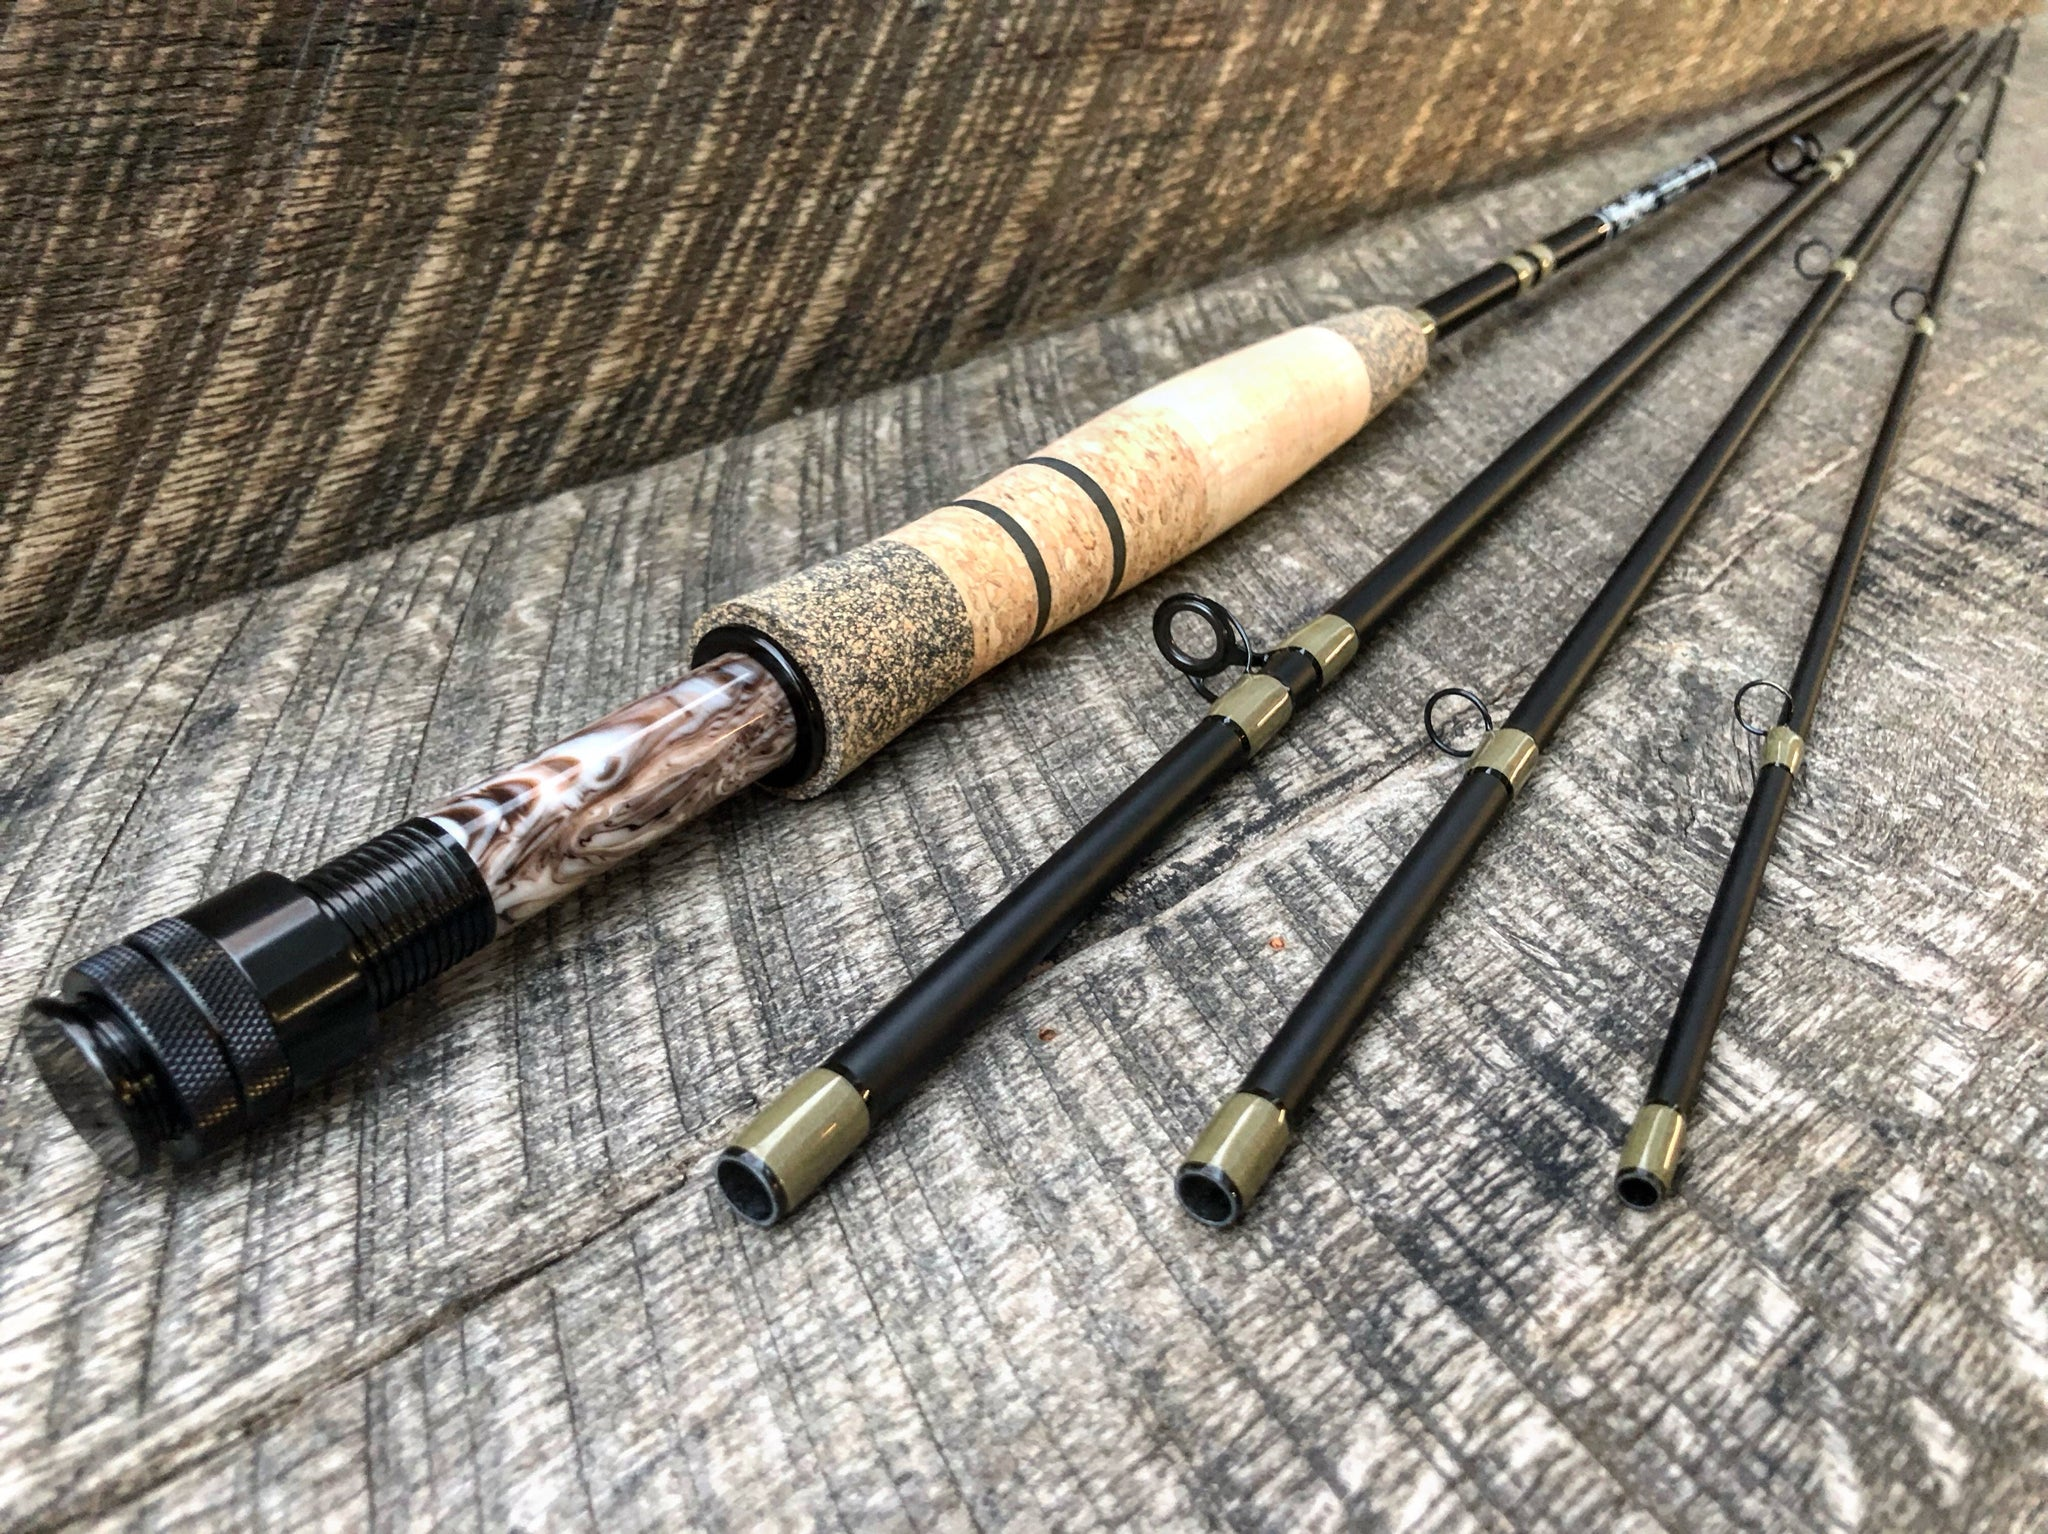 Midnight Special - 5wt - 9' - #1017 Shop Custom